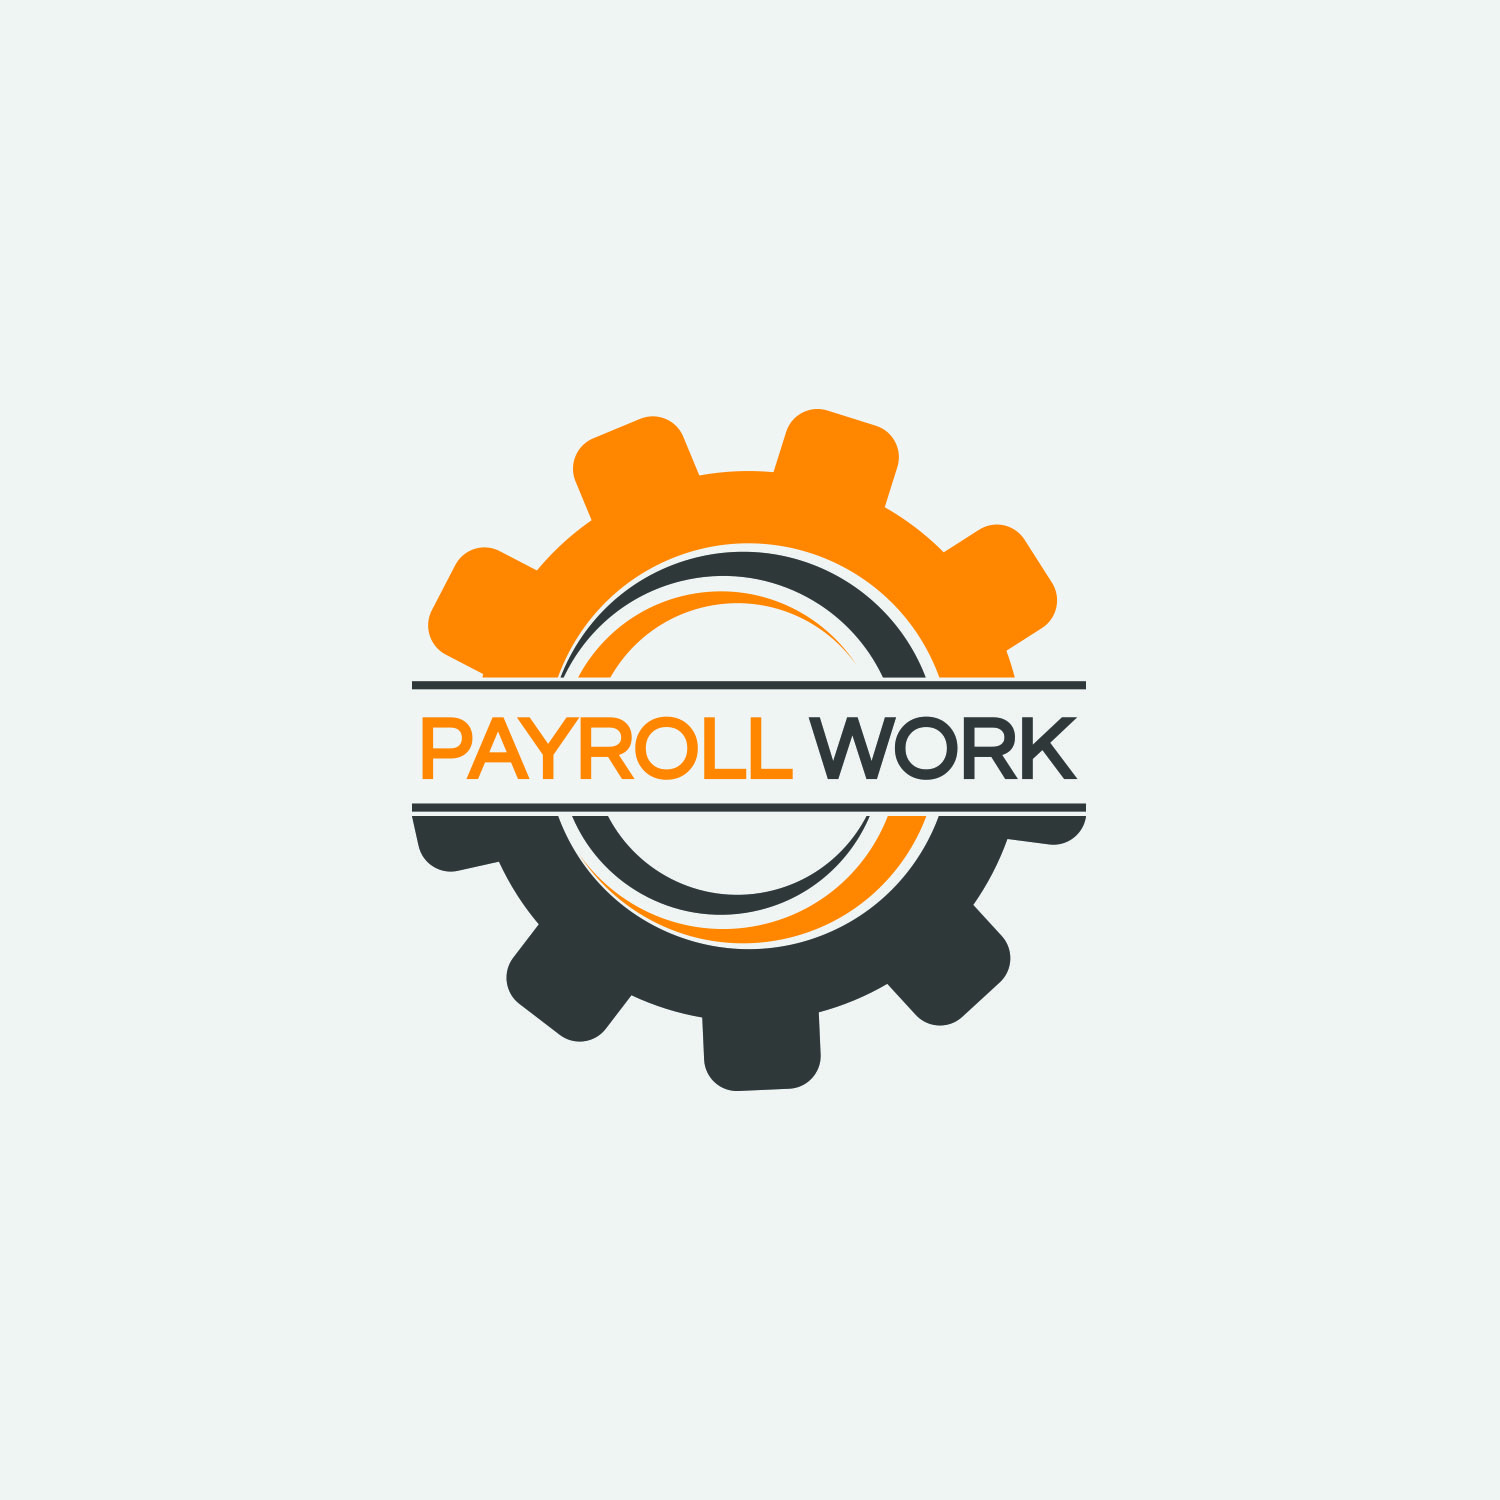 Logo Design by Umair ahmed Iqbal - Entry No. 63 in the Logo Design Contest Captivating Logo Design for The Payroll Works.